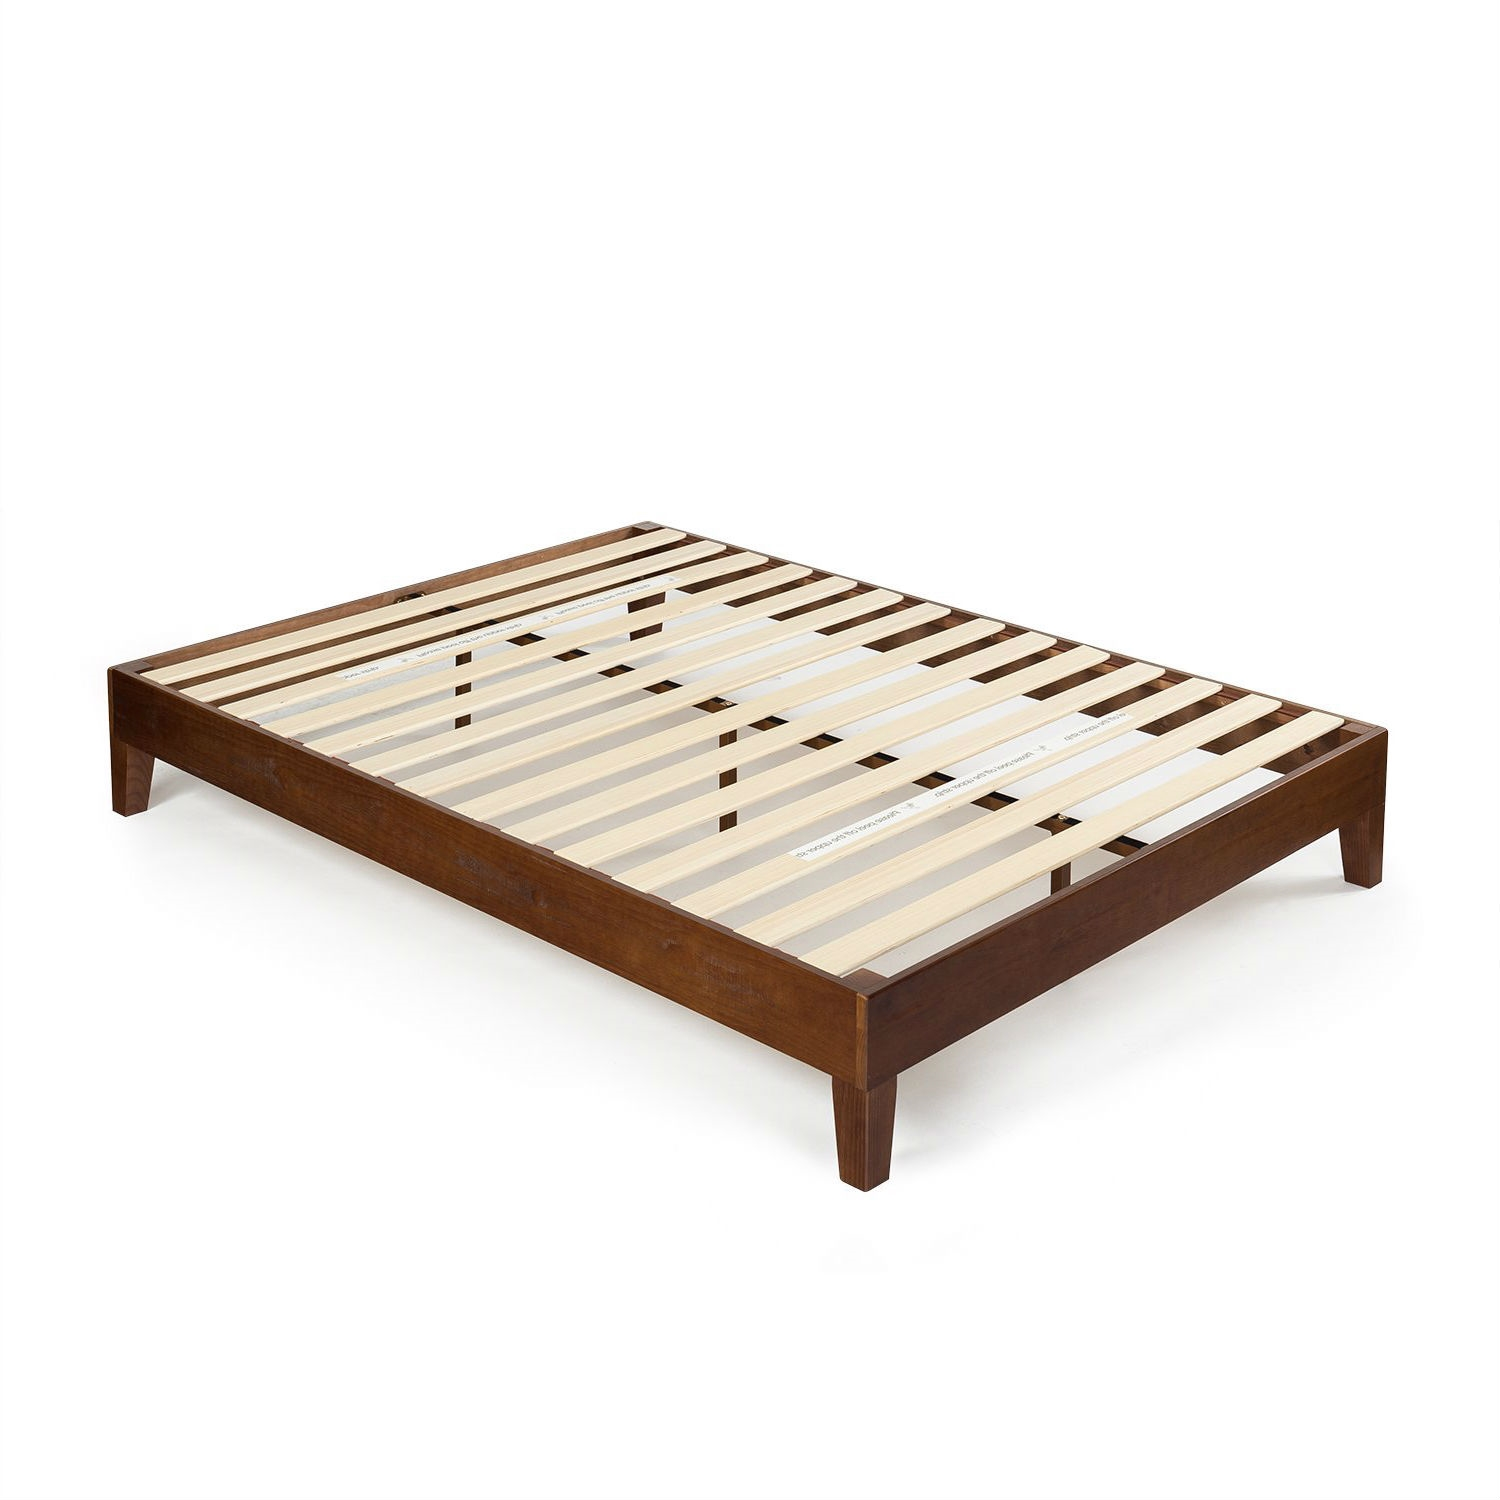 Beautiful Full Size Low Profile Solid Wood Platform Bed Frame In Espresso Finish